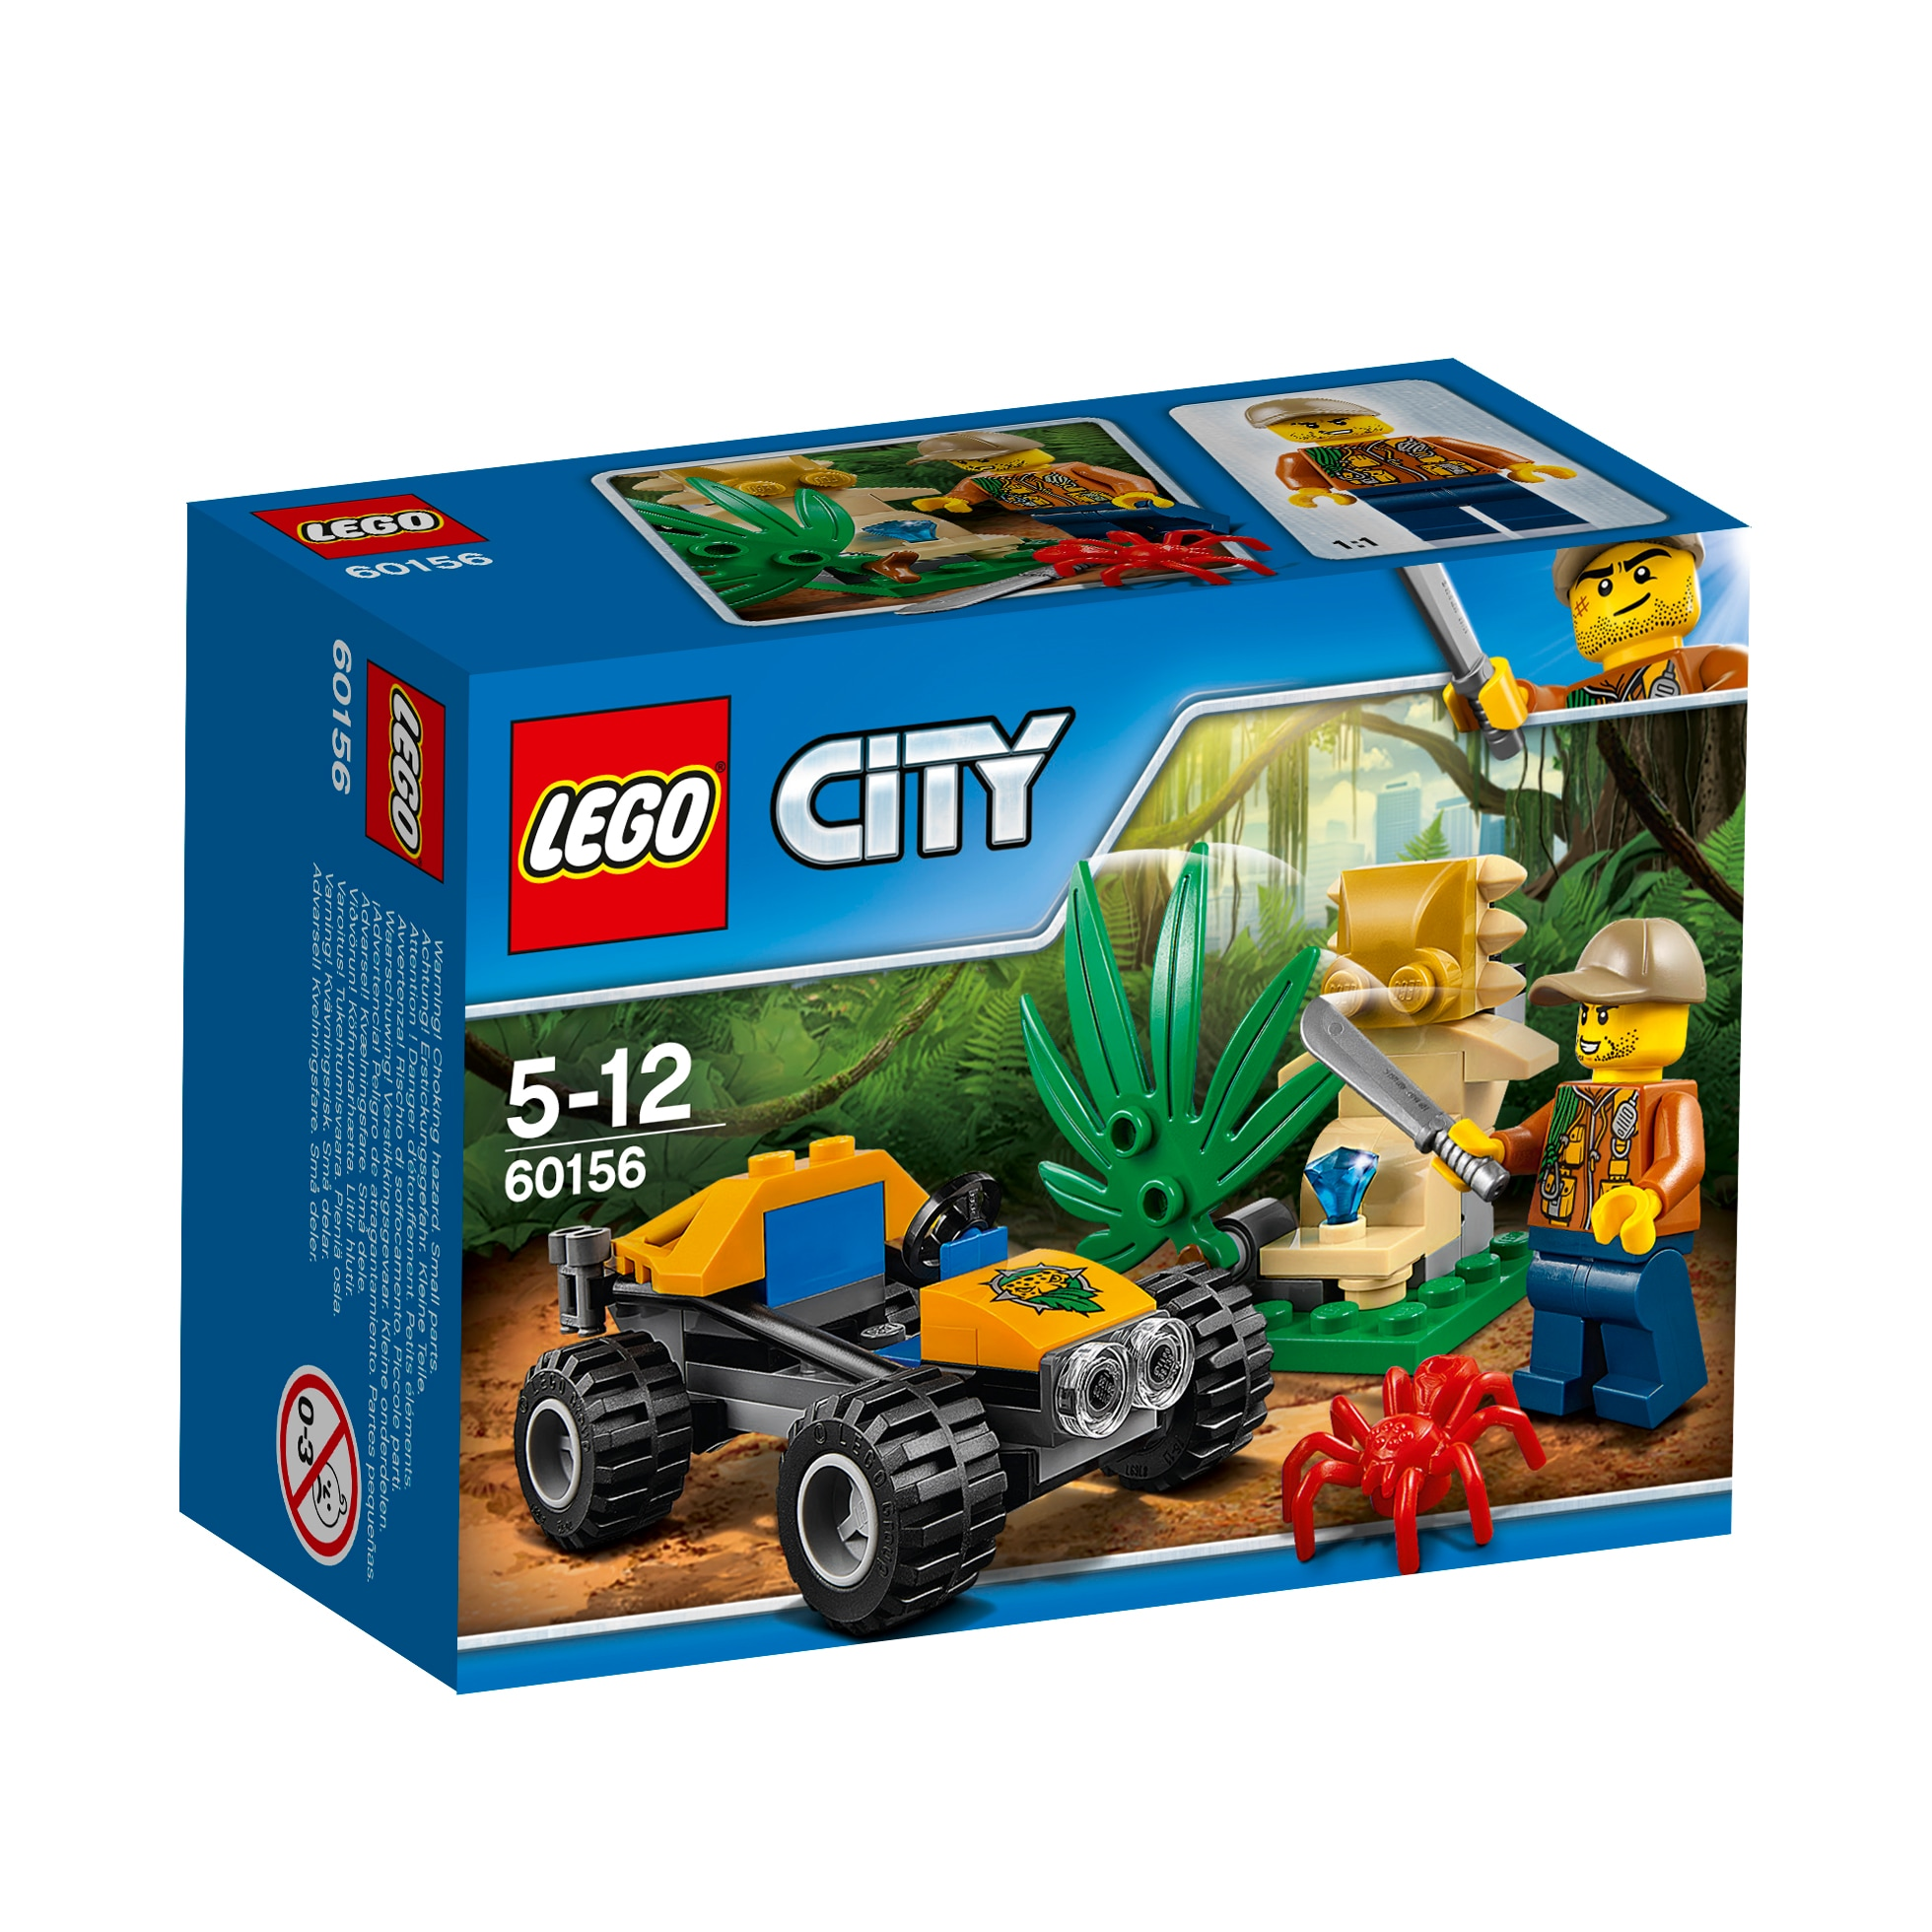 LEGO_CITY_Jungle_60156_Box1